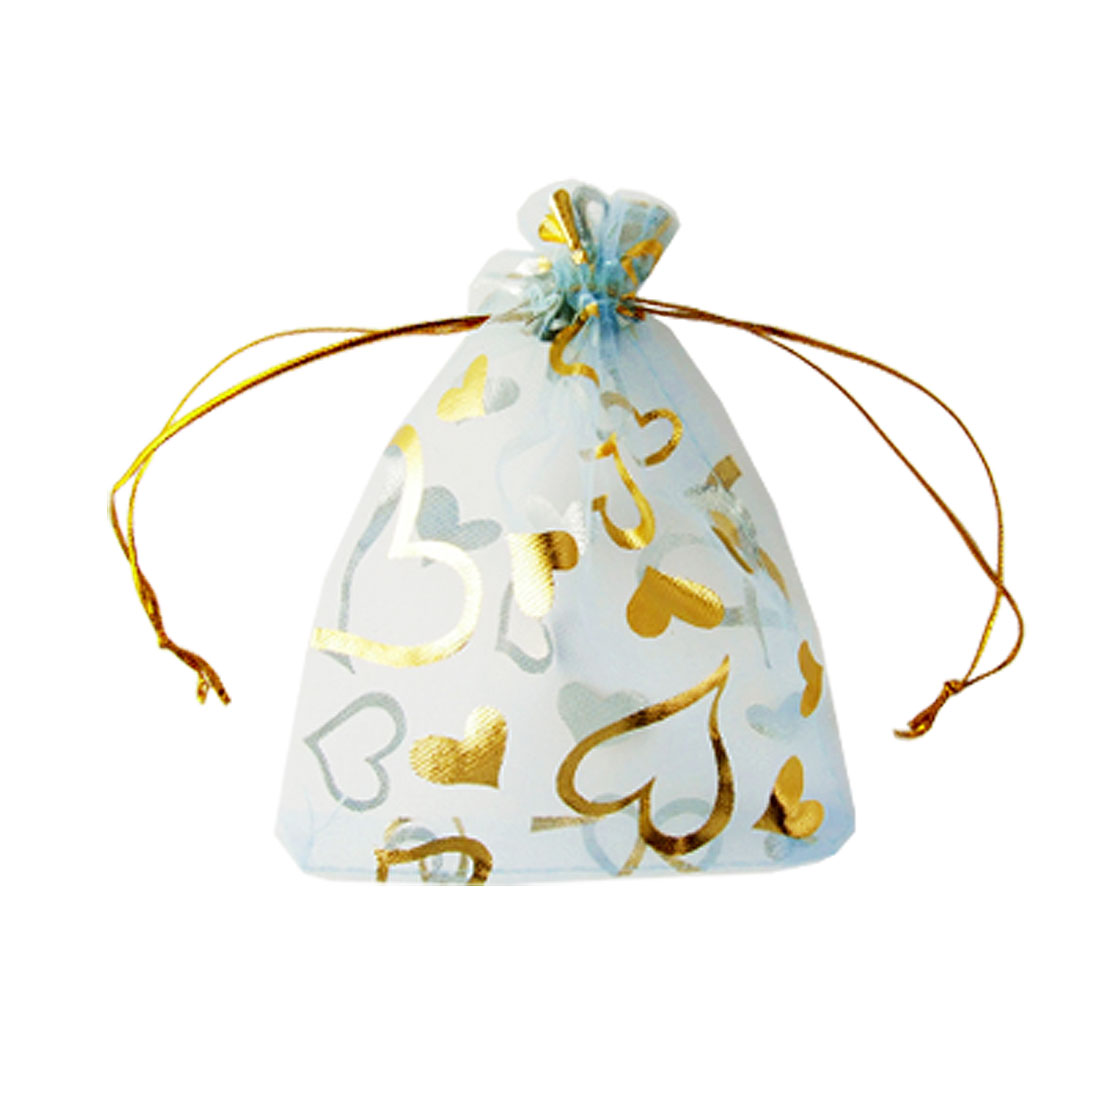 Gold Tone Heart Print Blue Organza Wedding Candy Gift Bags 10 Pcs